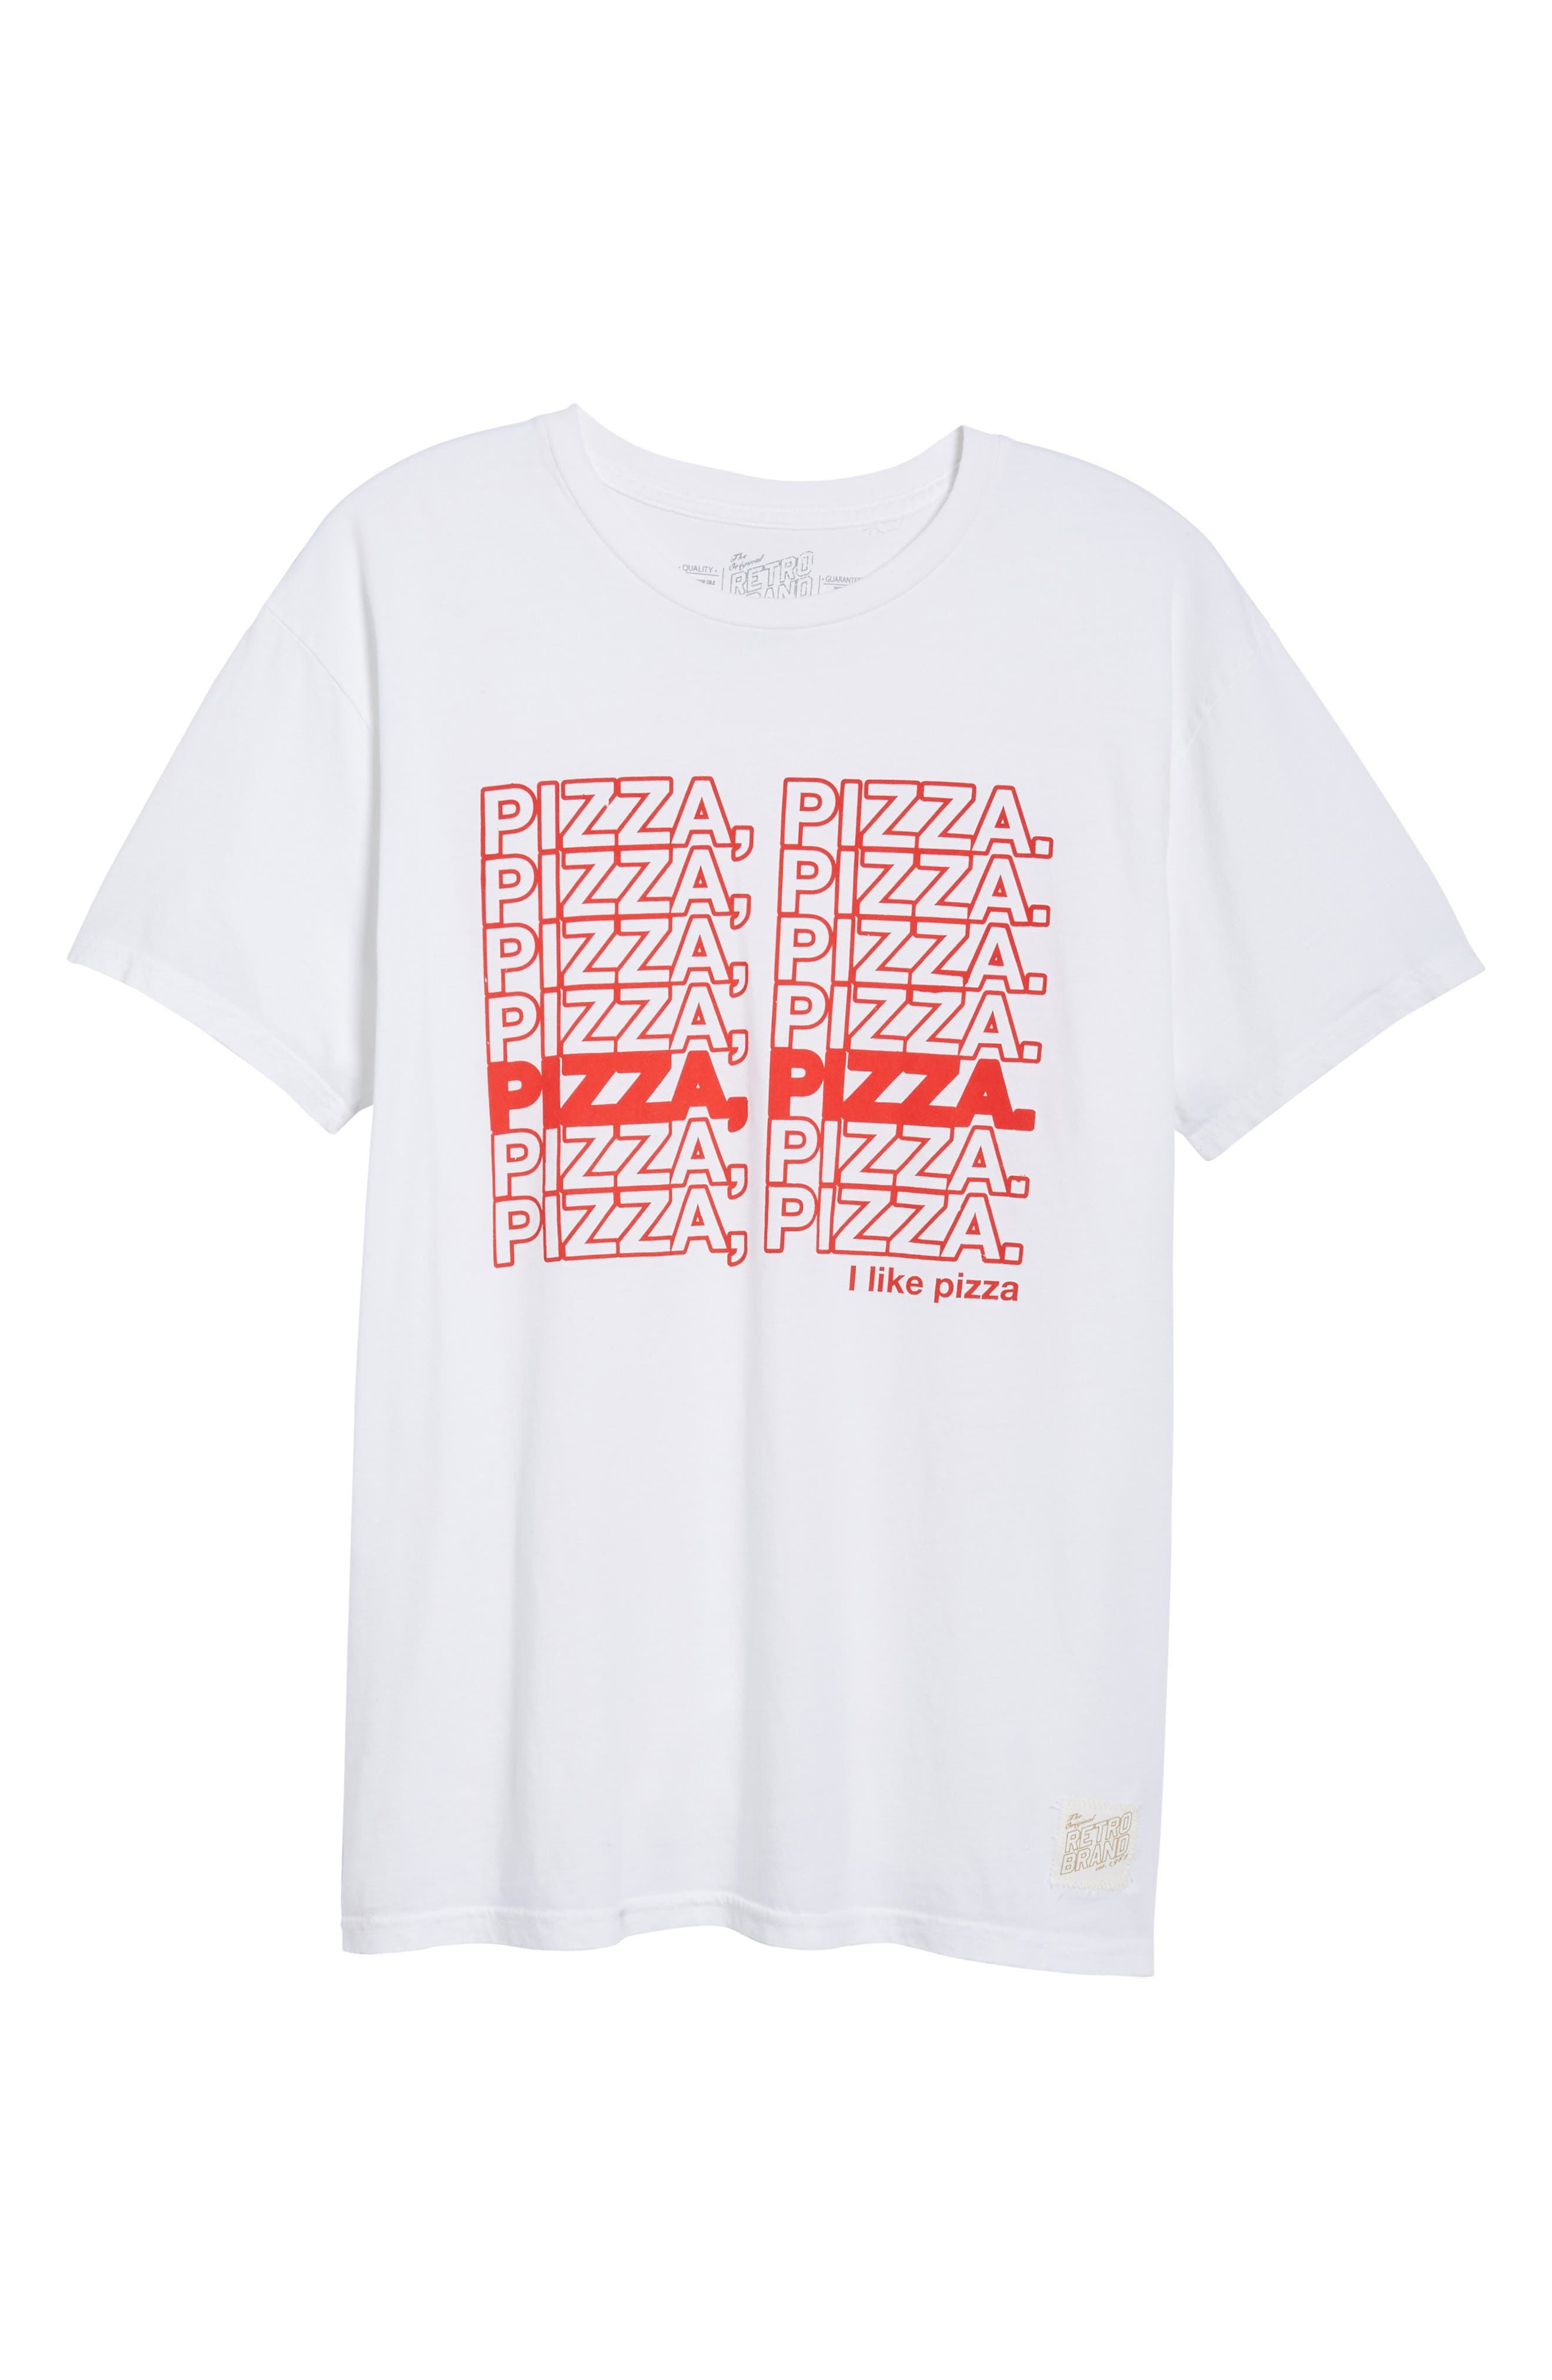 Pizza Pizza Graphic T-Shirt,                             Alternate thumbnail 6, color,                             White